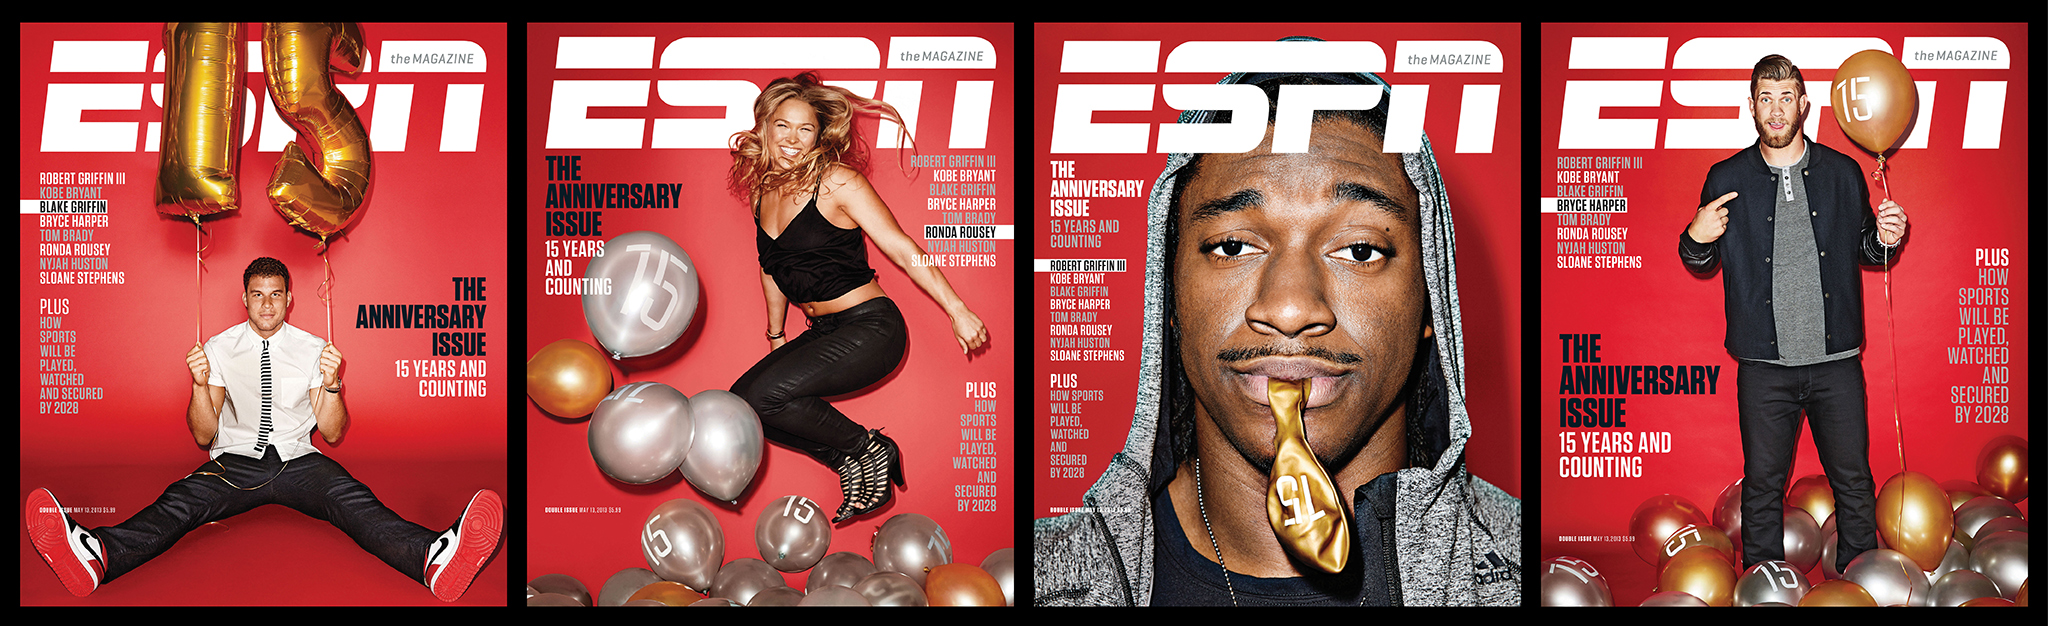 ESPN The Magazine's 15th Anniversary Issue